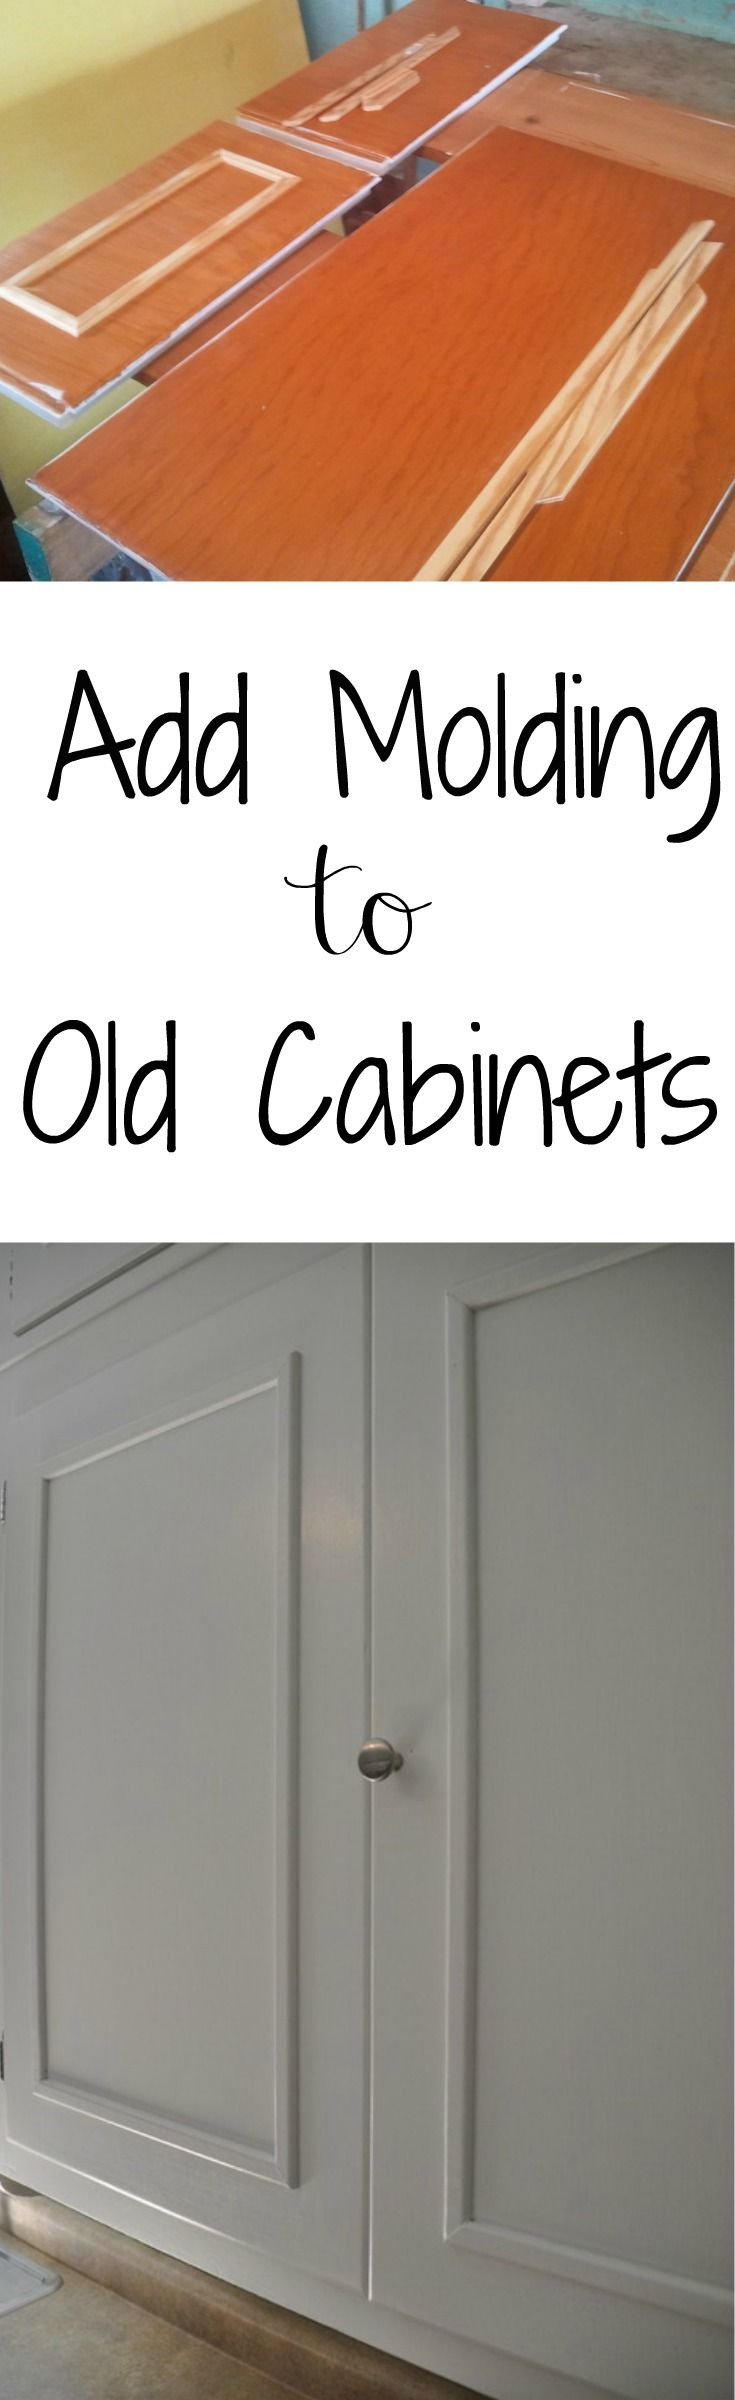 cabinet door makeover old kitchen cabinets Add Molding to Old Cabinets Great way to update those old and boring cabinets